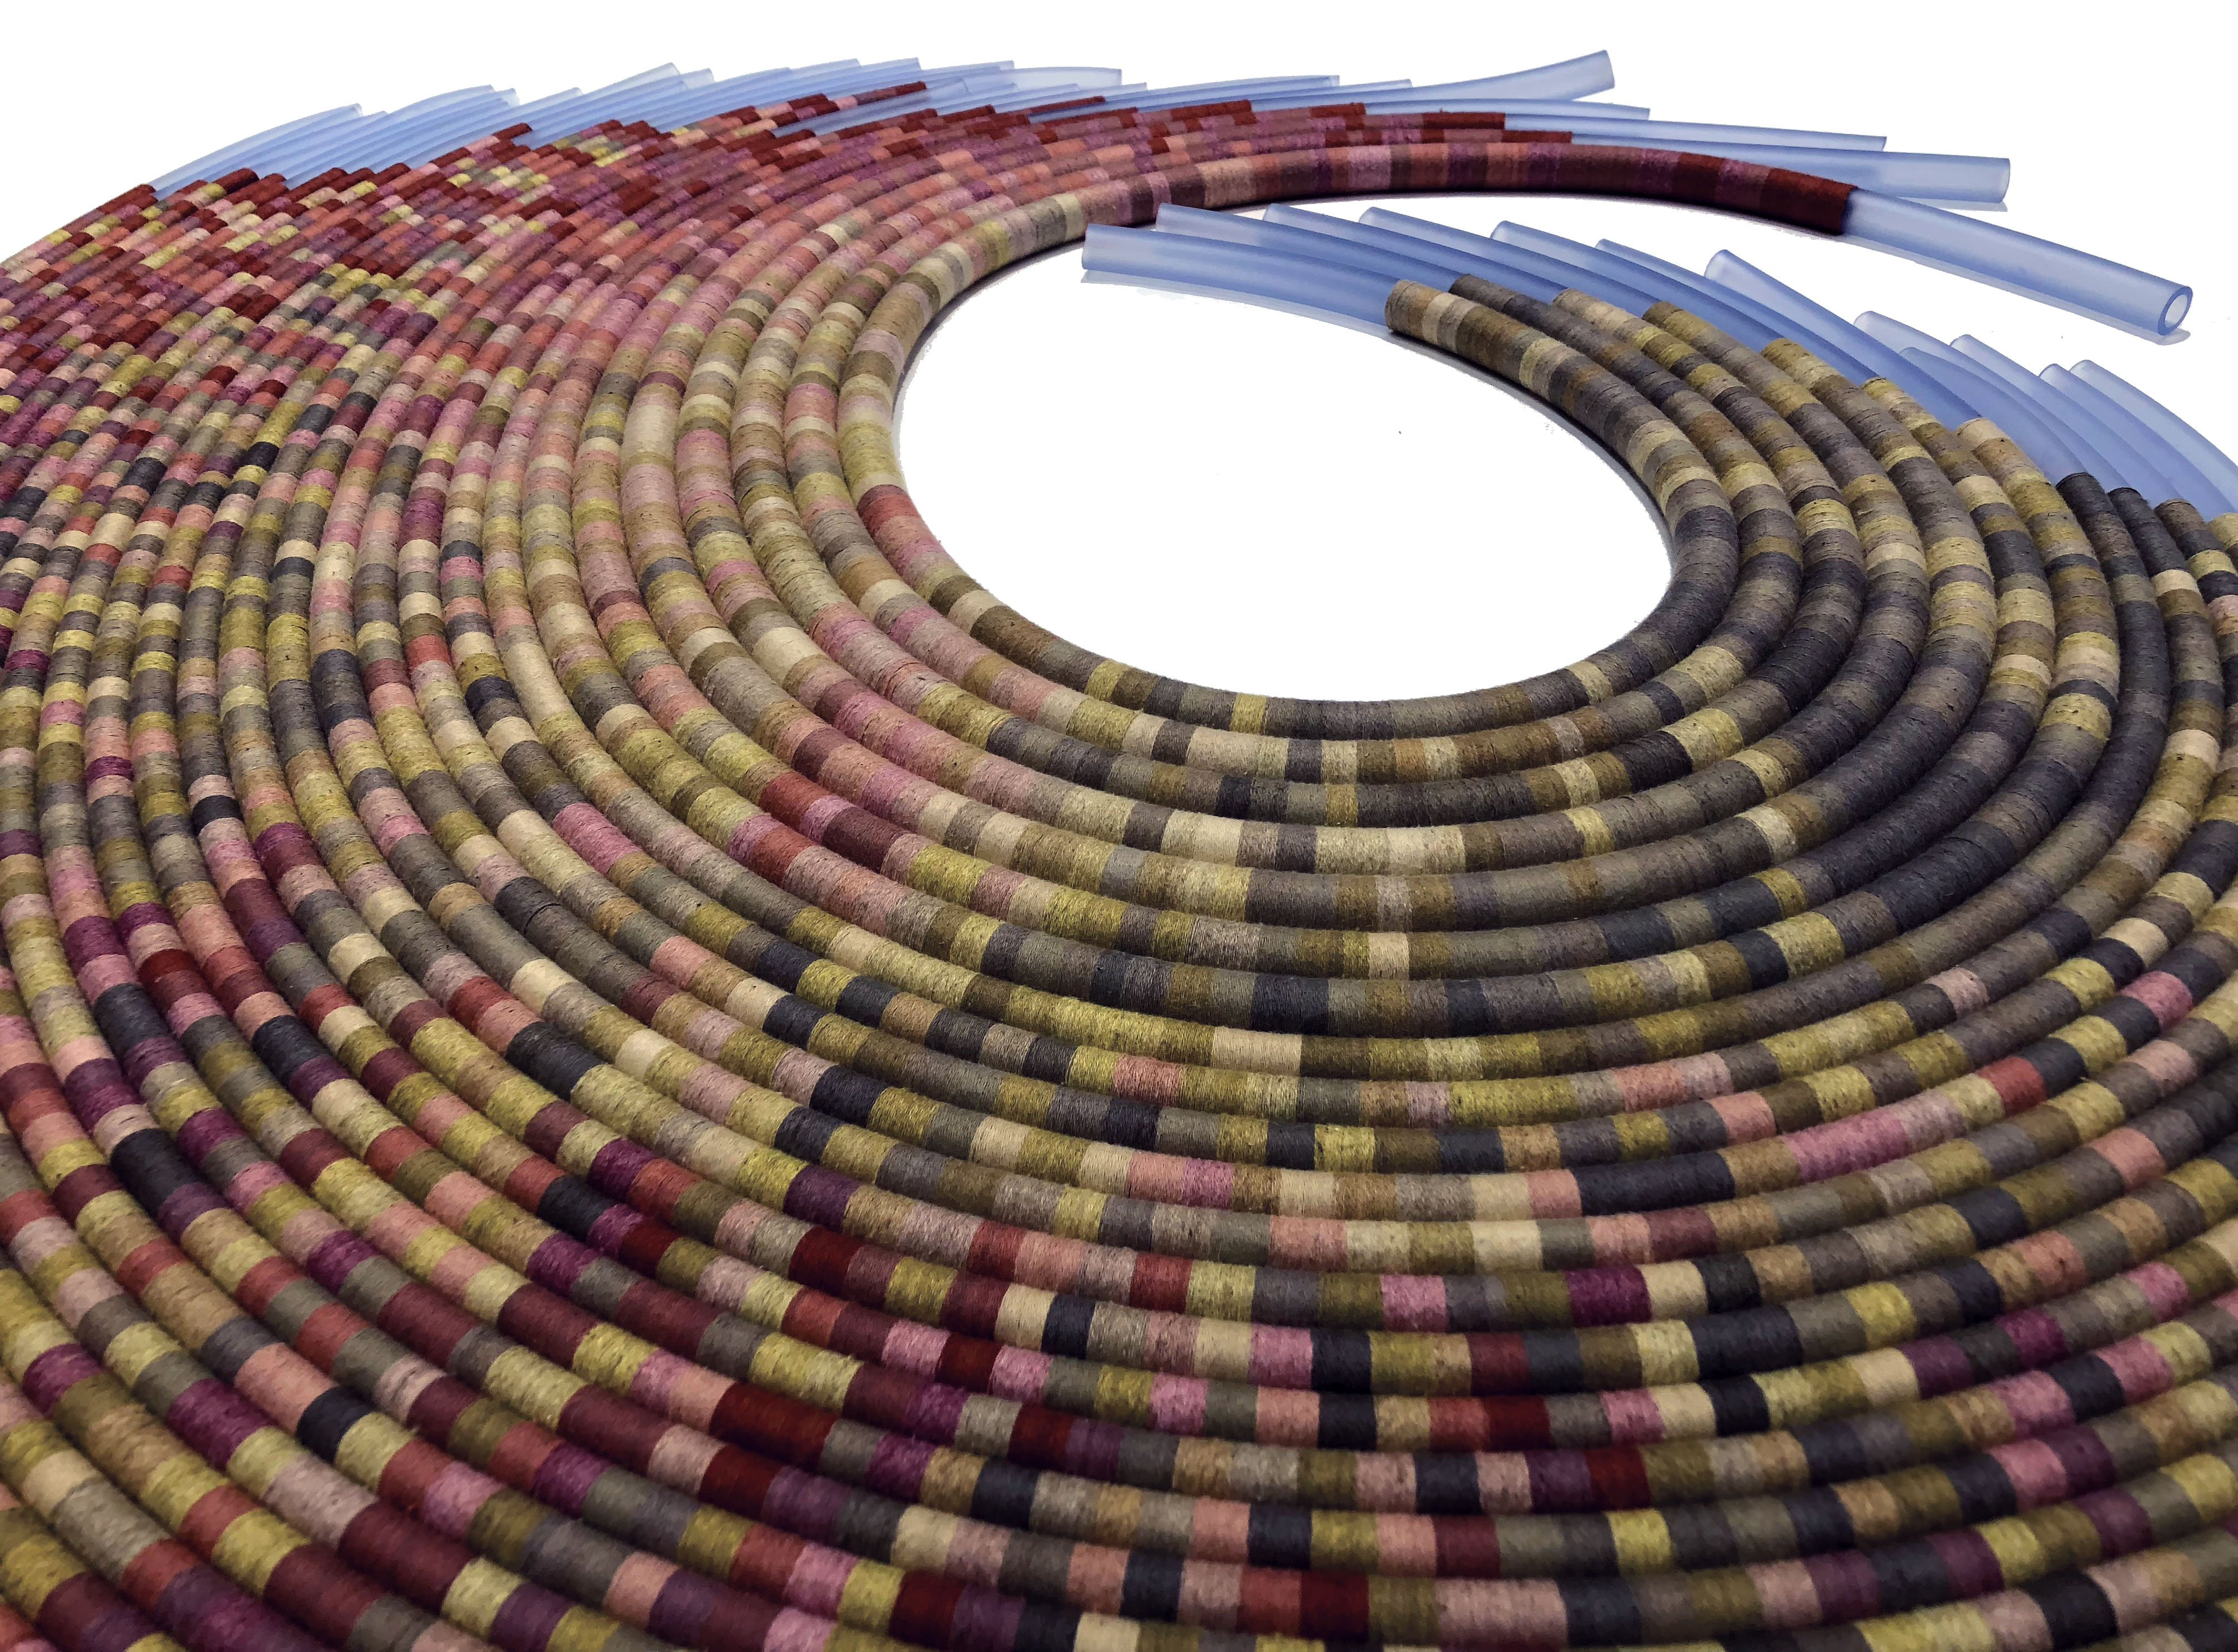 Photo of varying lengths of medical tubing lying on a surface, each one wrapped in colored thread and nested to create a circular swoop.